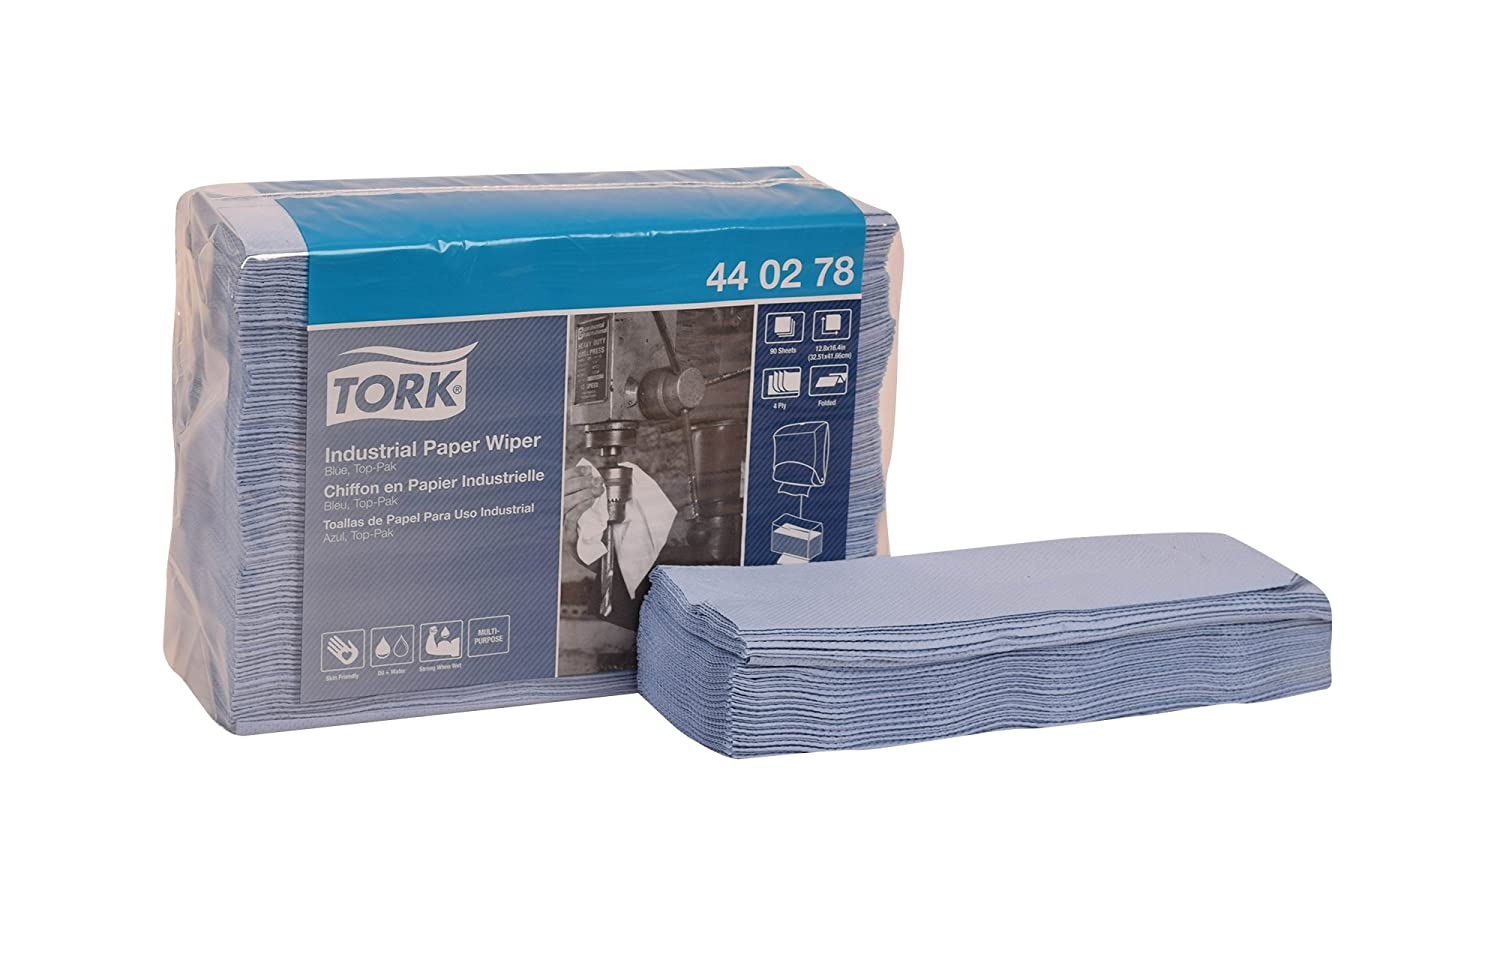 Tork 440278 Industrial Paper Wiper, Top-Pak, 4-Ply, 12.8